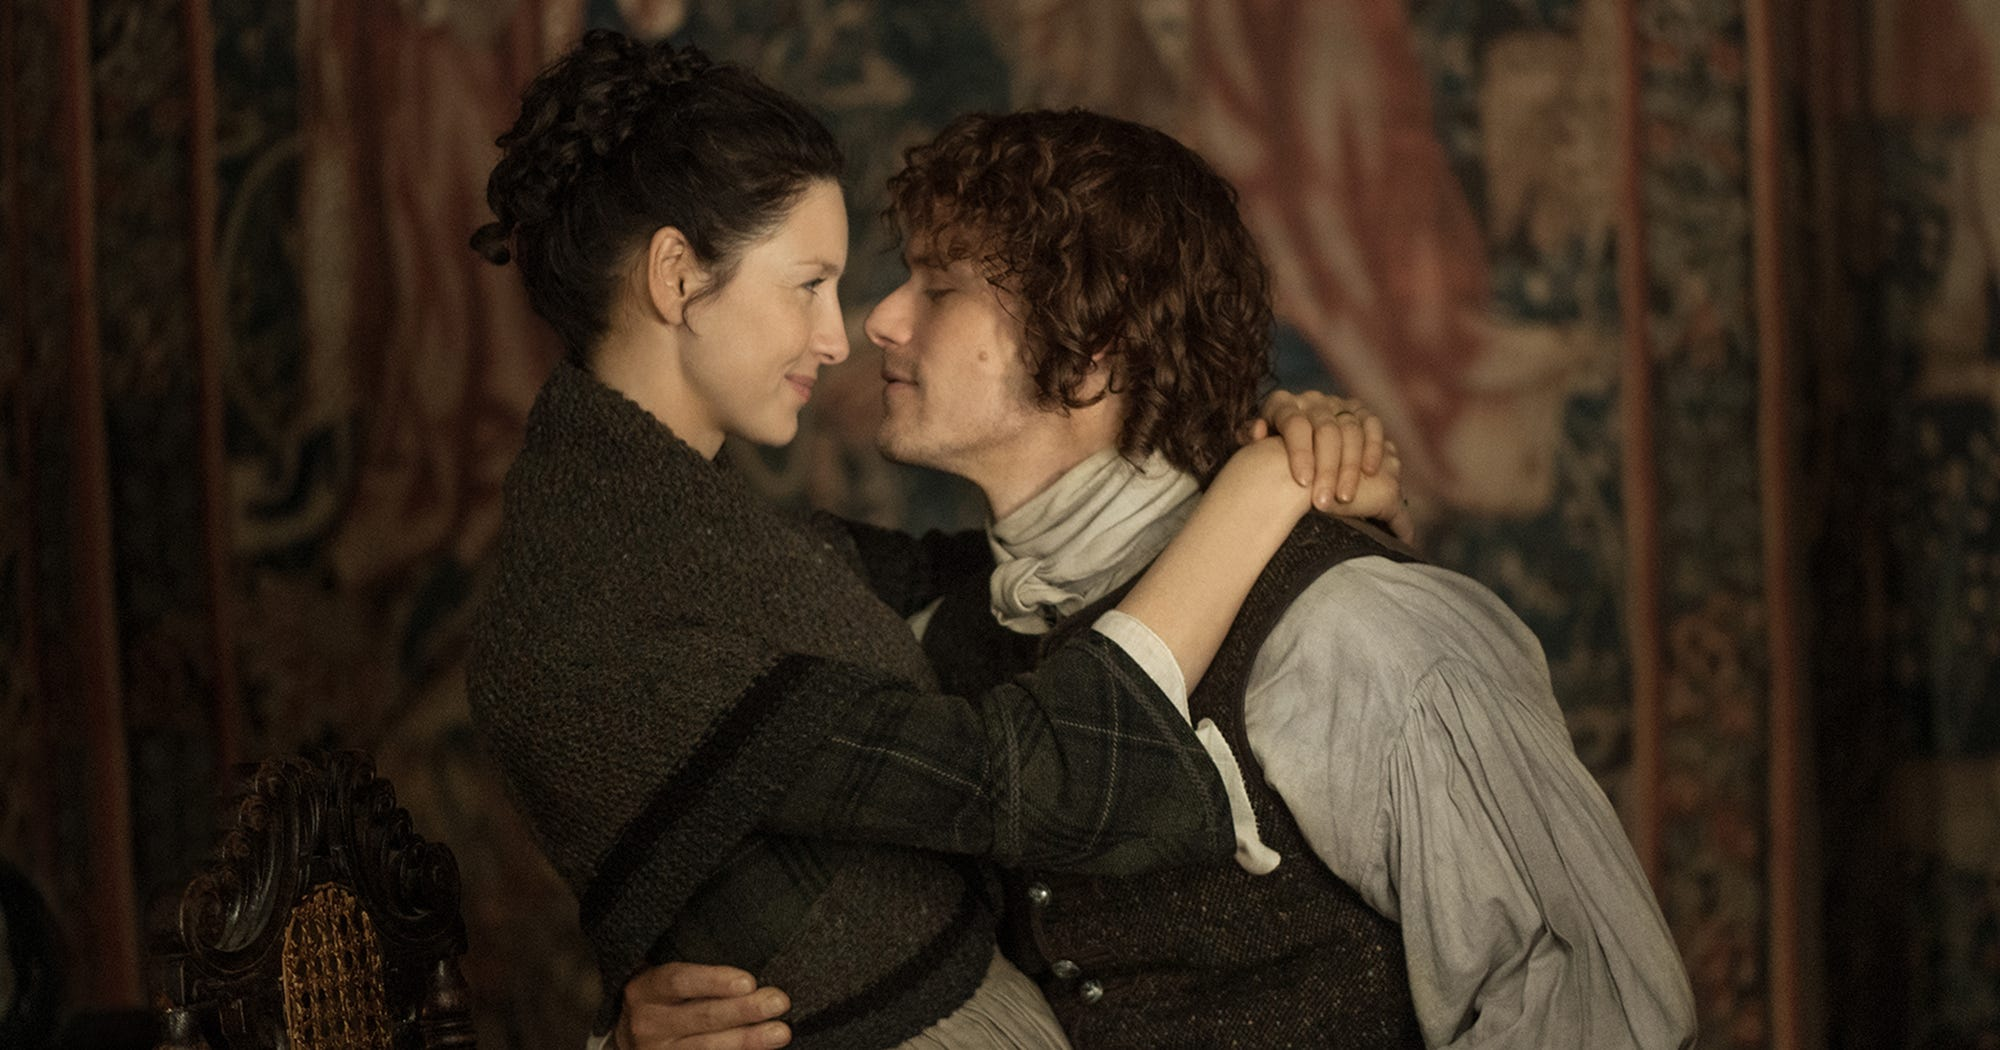 watch outlander season 2 episode 2 free